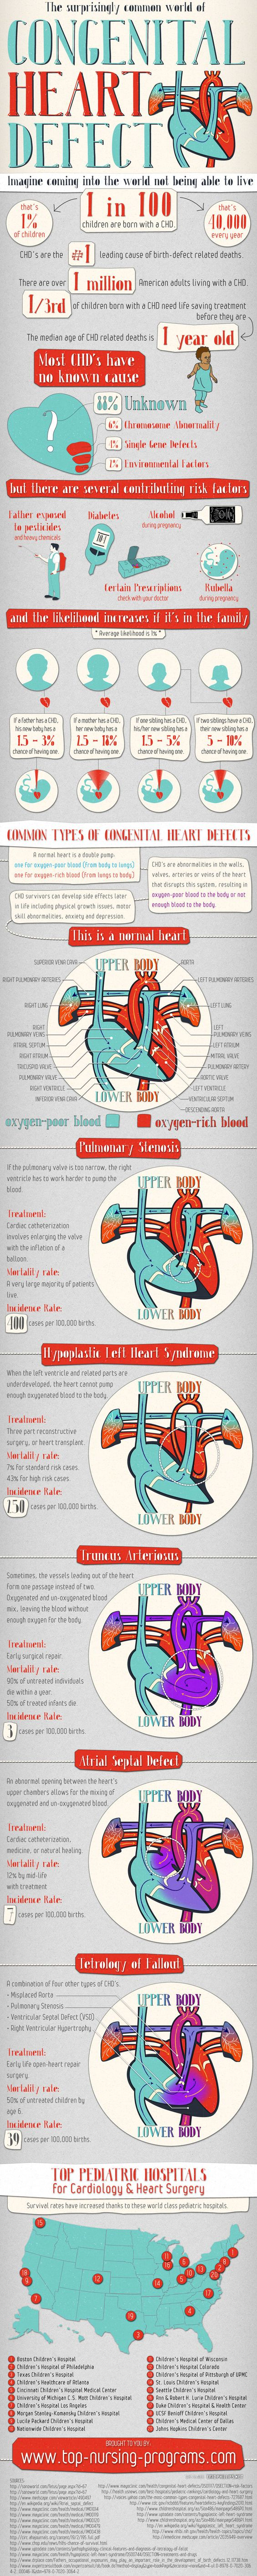 Educating parents about congenital heart defects (Infographic):